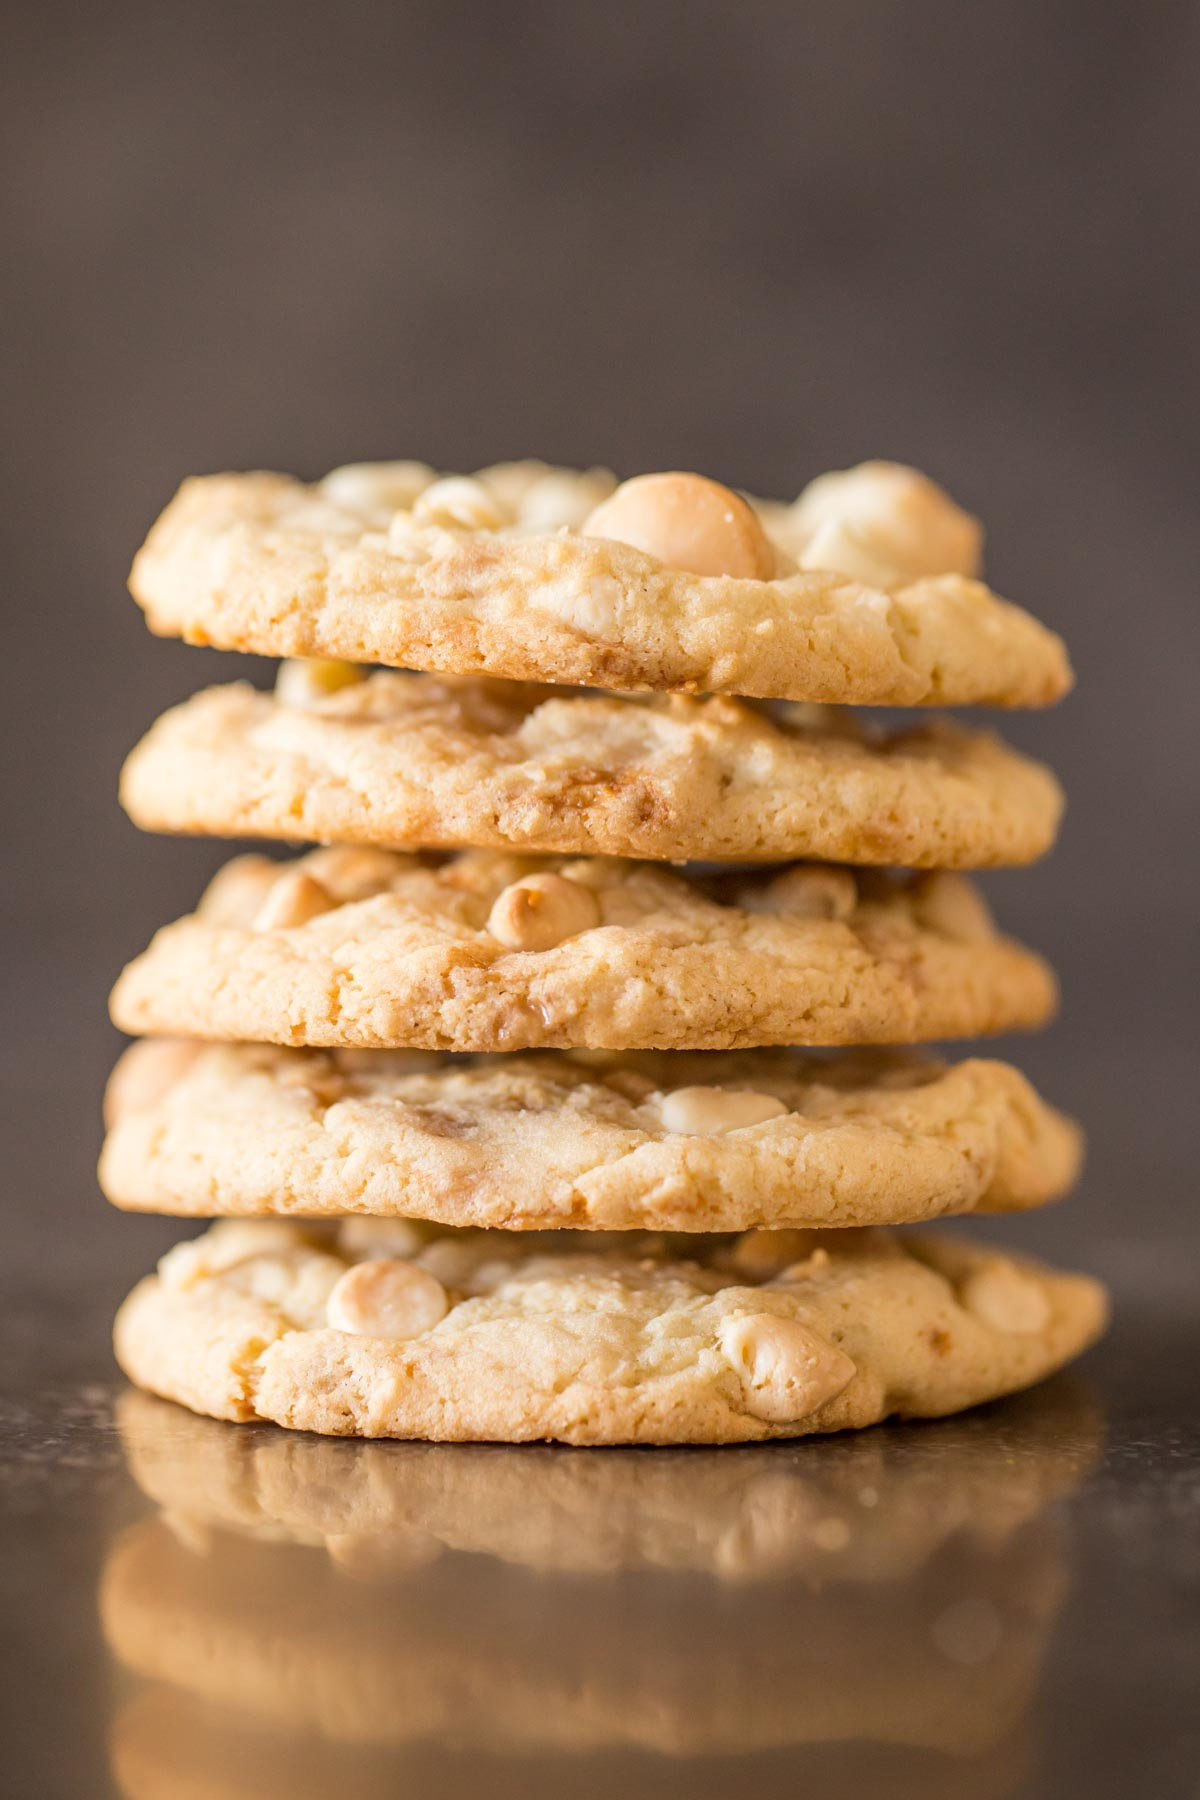 These Buttery Toffee White Chocolate Chip Macadamia Nut Cookies will have you falling in love at first bite! Perfect way to kick off the fall baking season!